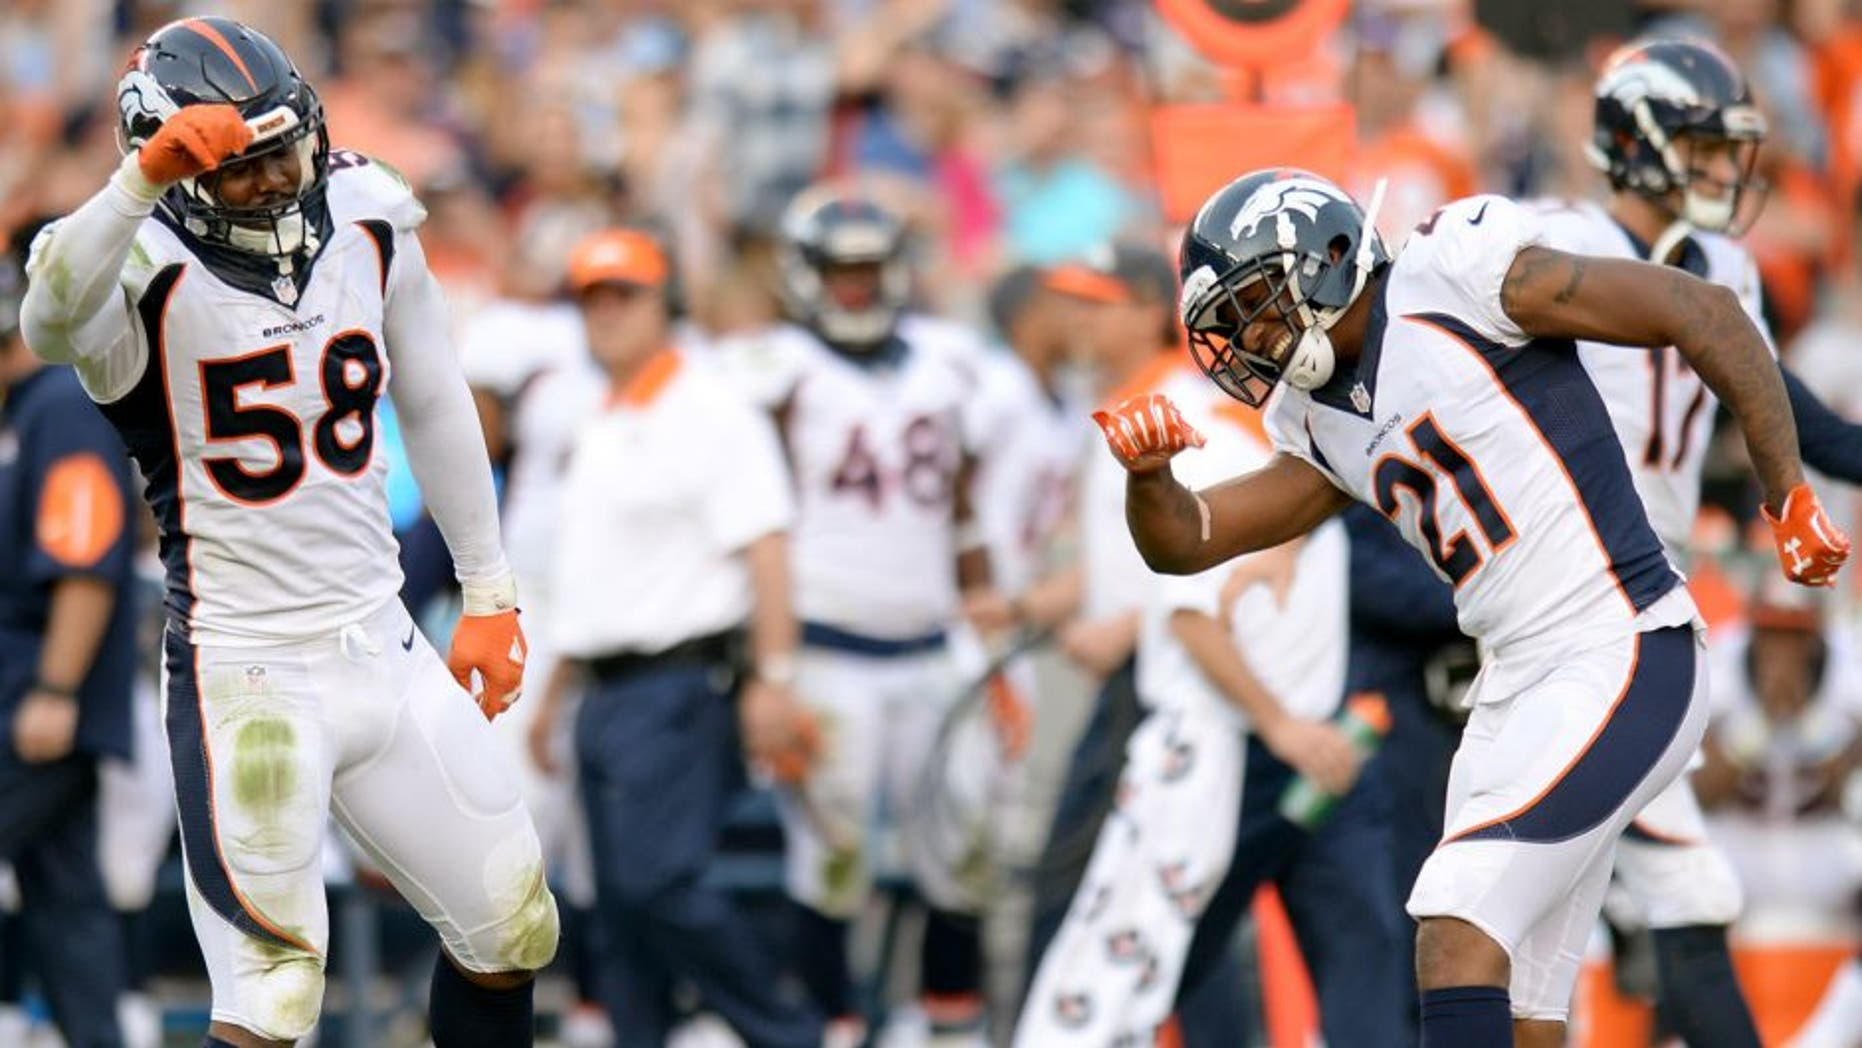 Dec 6, 2015; San Diego, CA, USA; Denver Broncos outside linebacker Von Miller (58) and cornerback Aqib Talib (21) celebrate after a defensive stop during the fourth quarter against the San Diego Chargers at Qualcomm Stadium. Mandatory Credit: Jake Roth-USA TODAY Sports